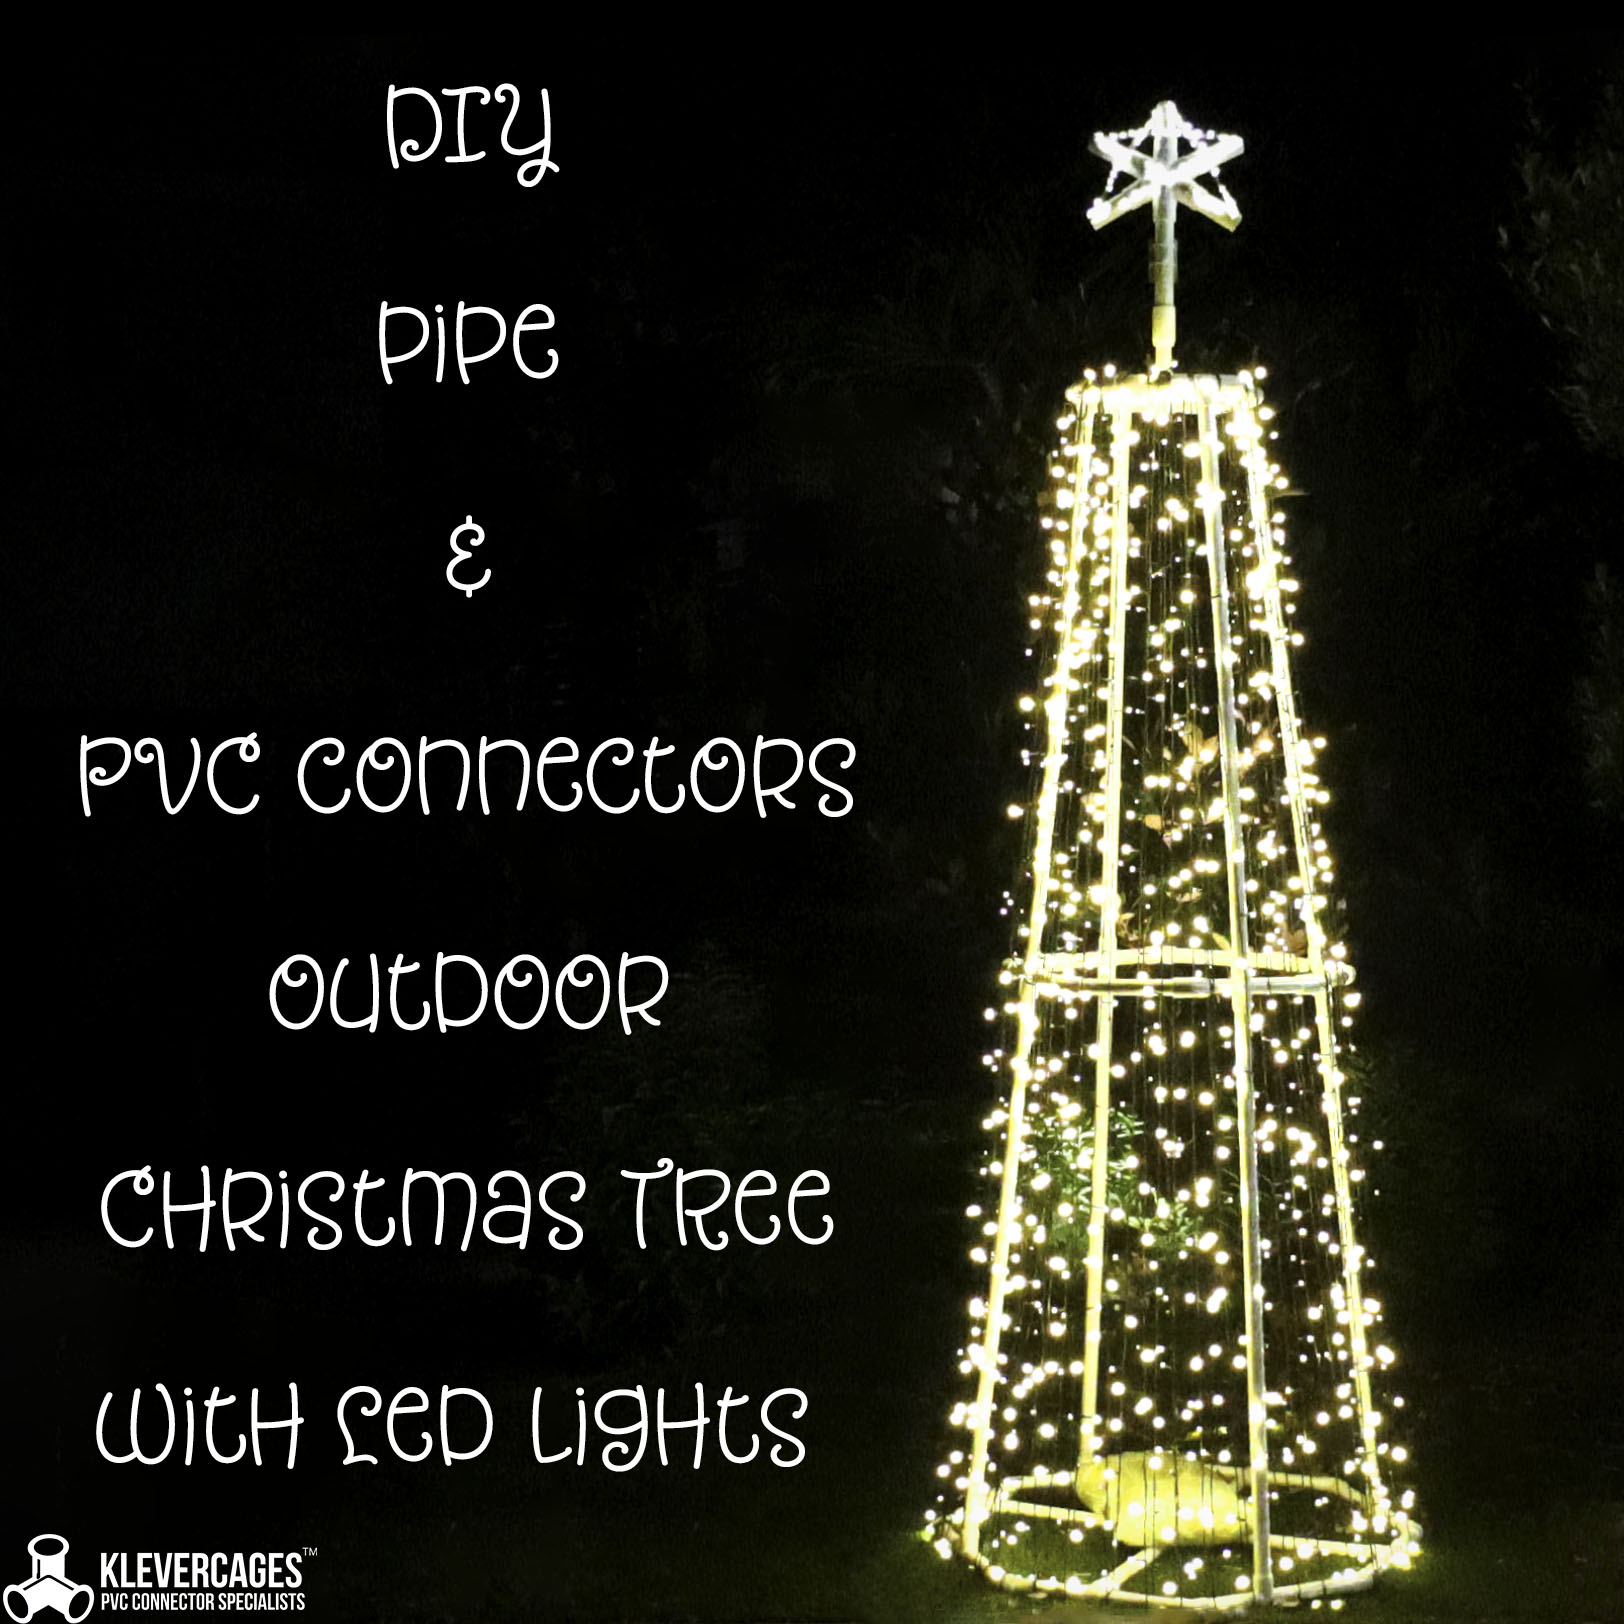 Diy outdoor Christmas tree built from connectors and PVC pipe from Klever Cages